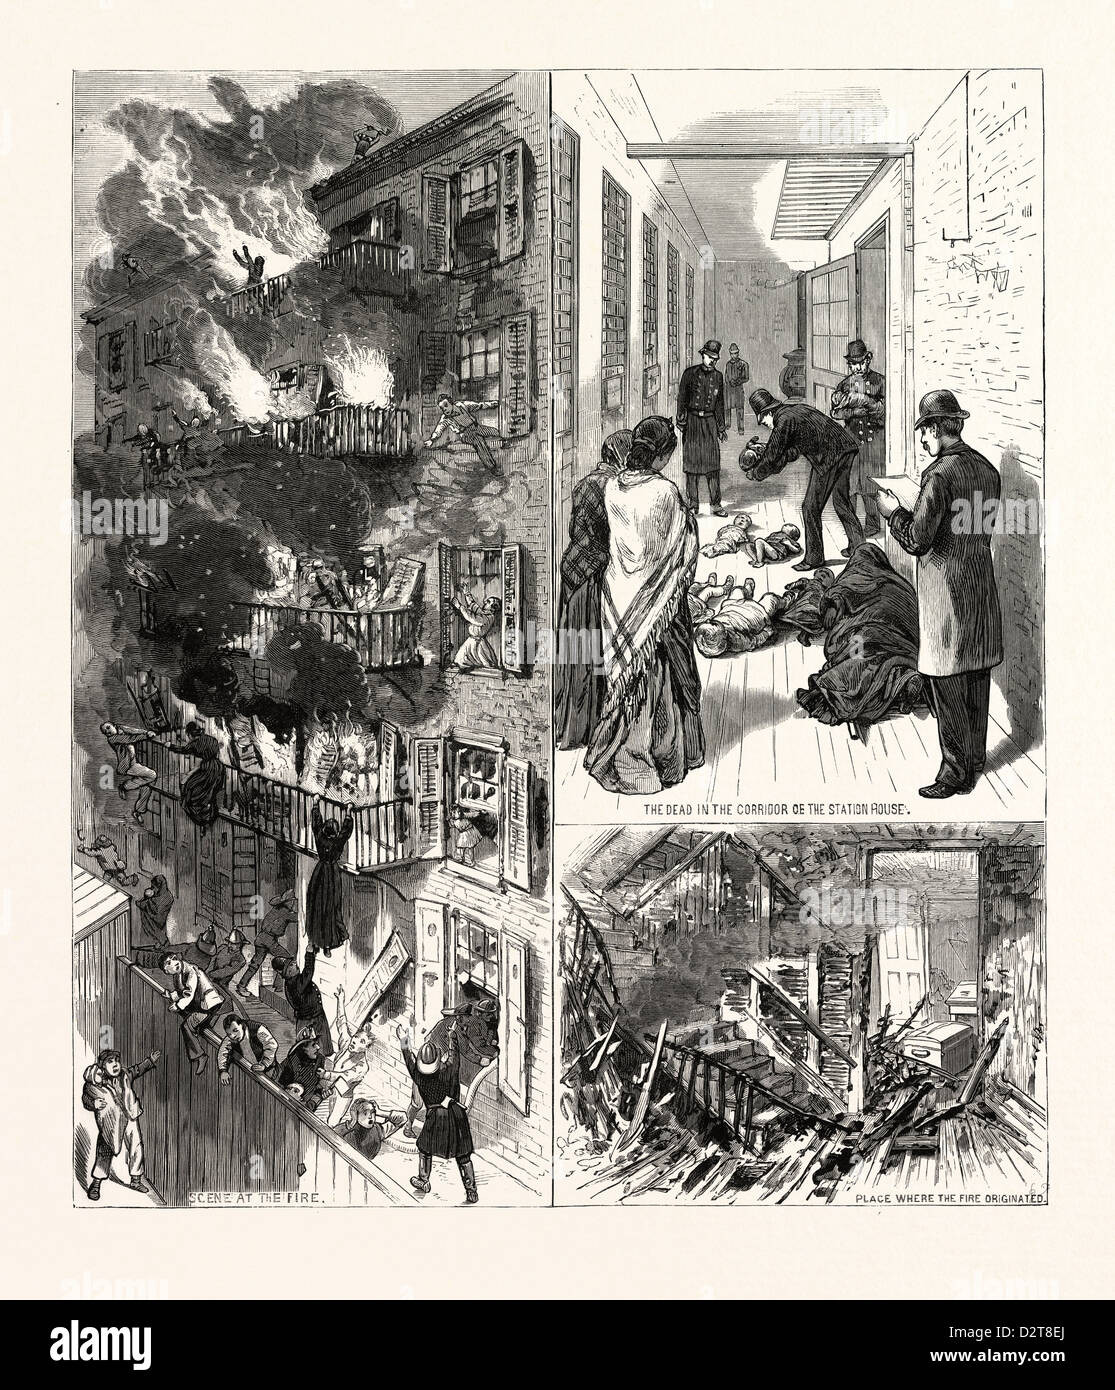 NEW YORK: THE FATAL FIRE IN THE REAR TENEMENT OF NO. 35 MADISON STREET, U.S., engraving 1880 1881 - Stock Image